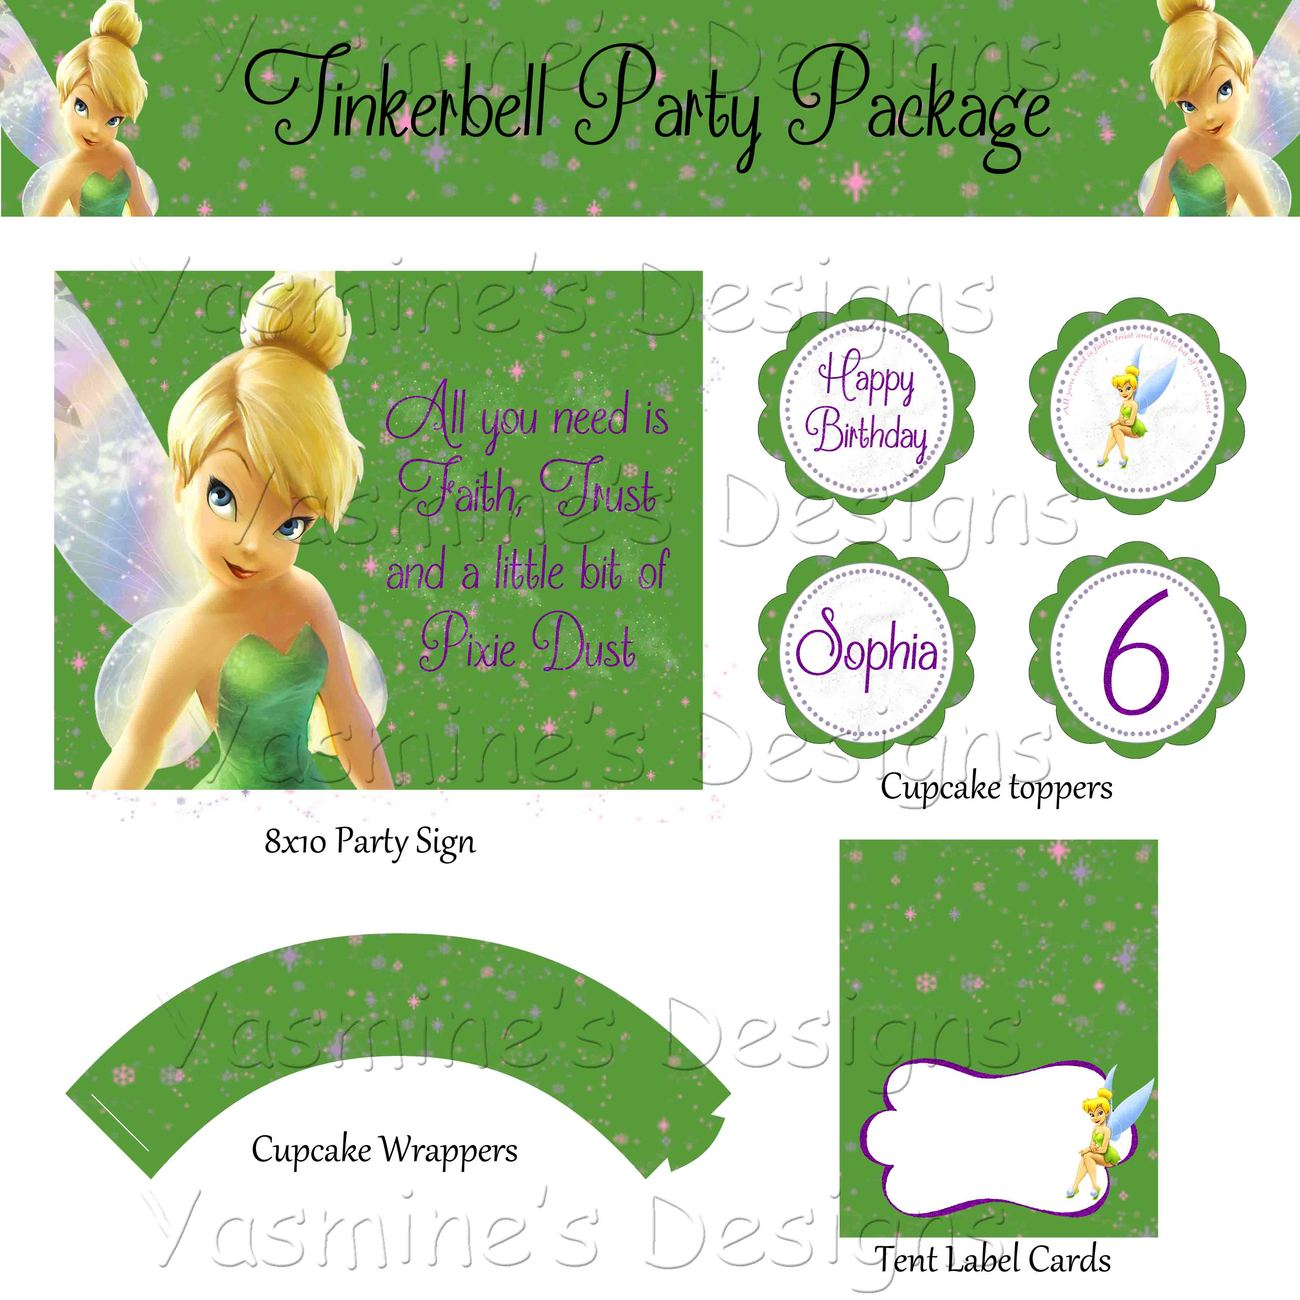 green tinkerbell printable invitations and similar items green tinkerbell printable invitations